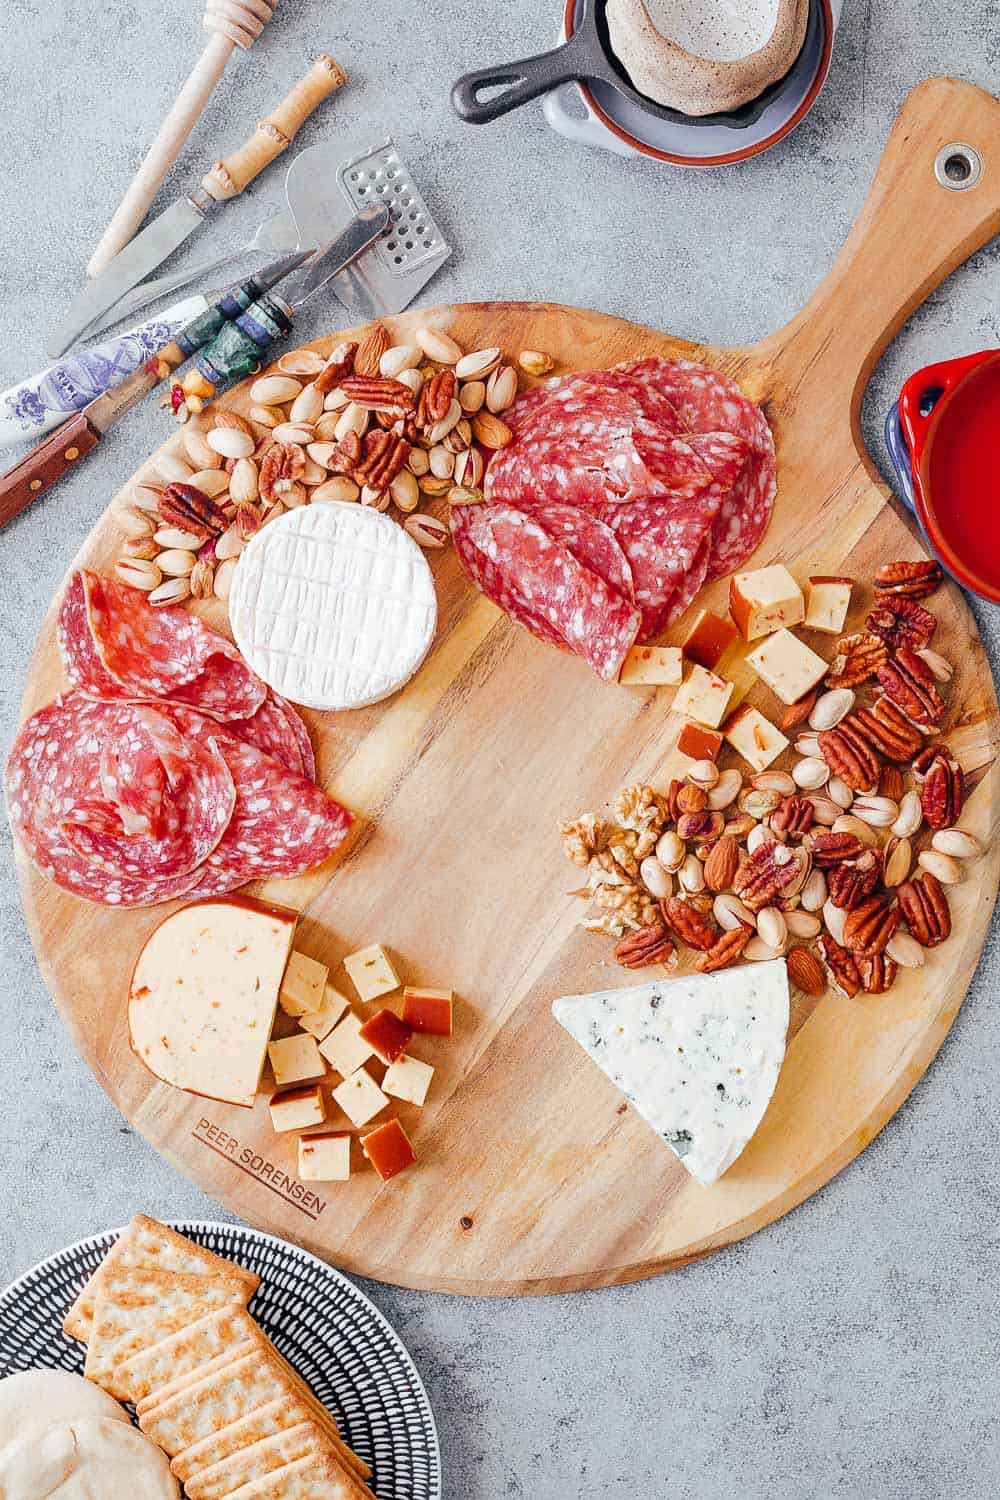 Step #3 to create the ultimate wine and cheese board on a budget is to choose cheap charcuterie for the board along with any nuts that you already have in your pantry. Salami is usually cheaper than more expensive cuts like parma ham